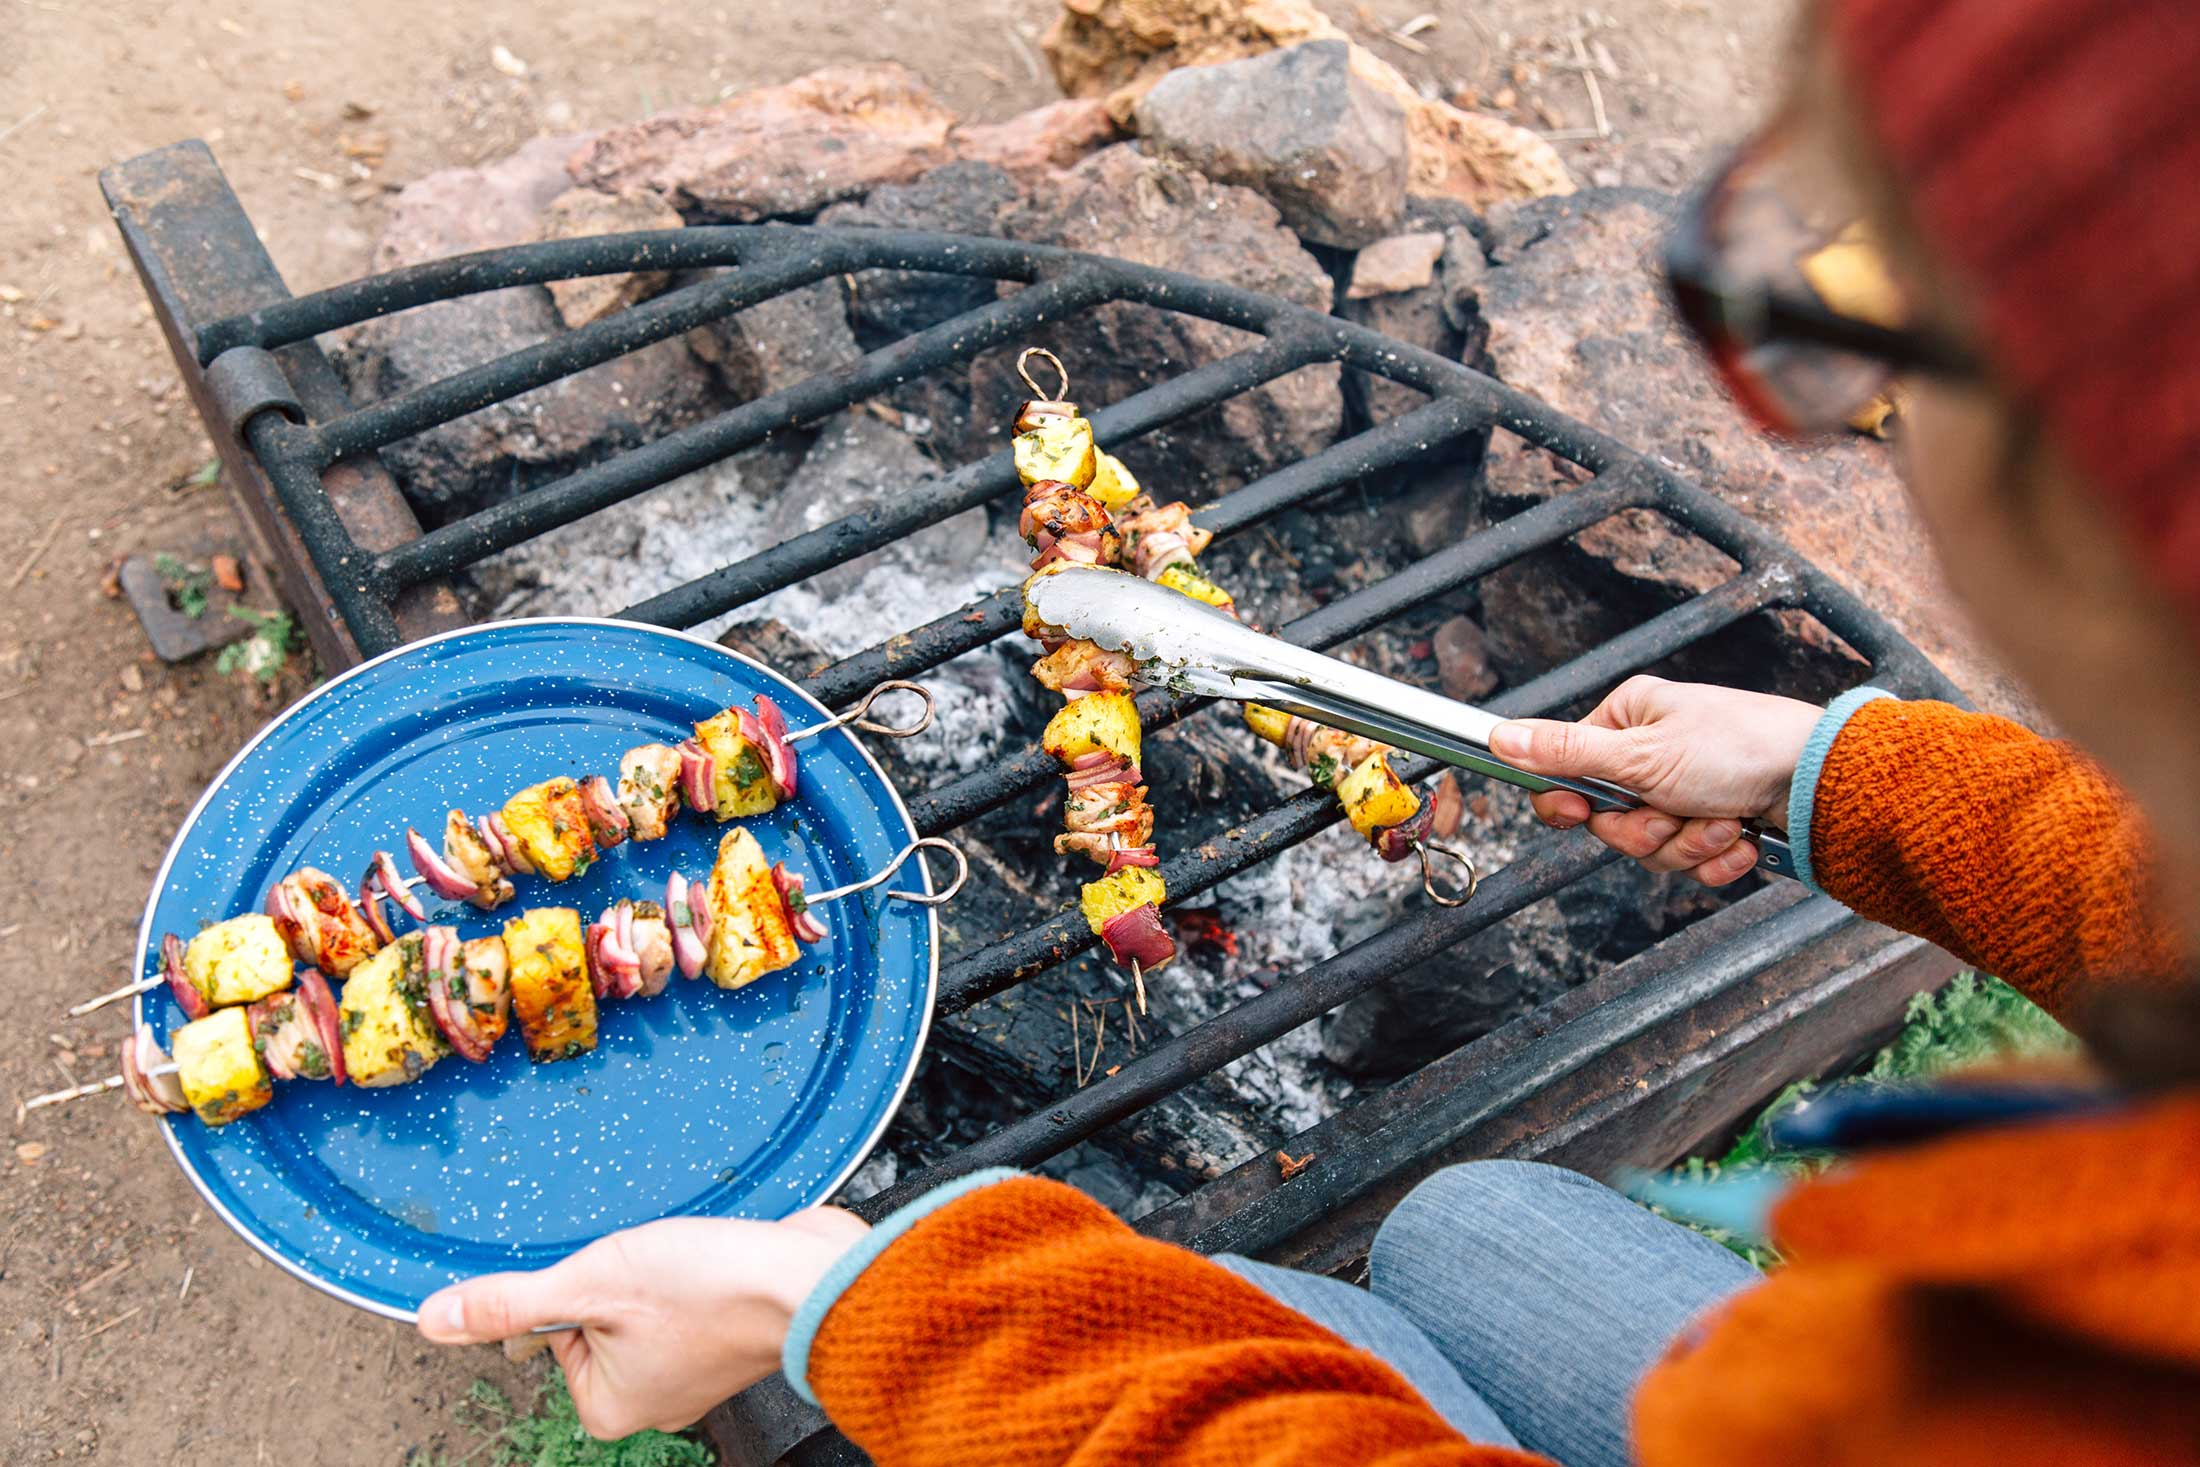 cooking pineapple chicken kebabs while camping